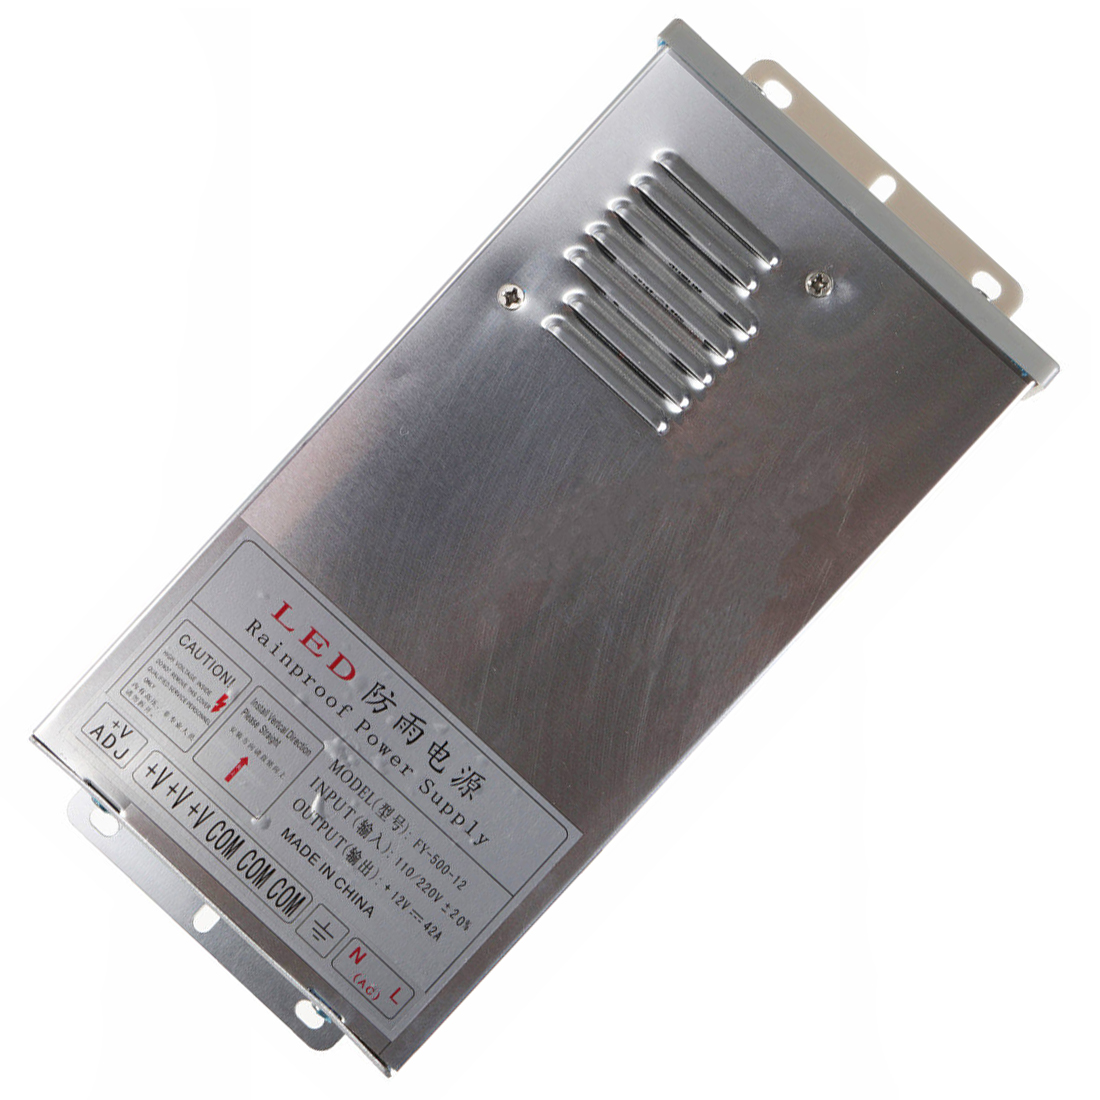 In/Outdoor Switching Power Supply Silver, FY 500 12 12V 42A 500W